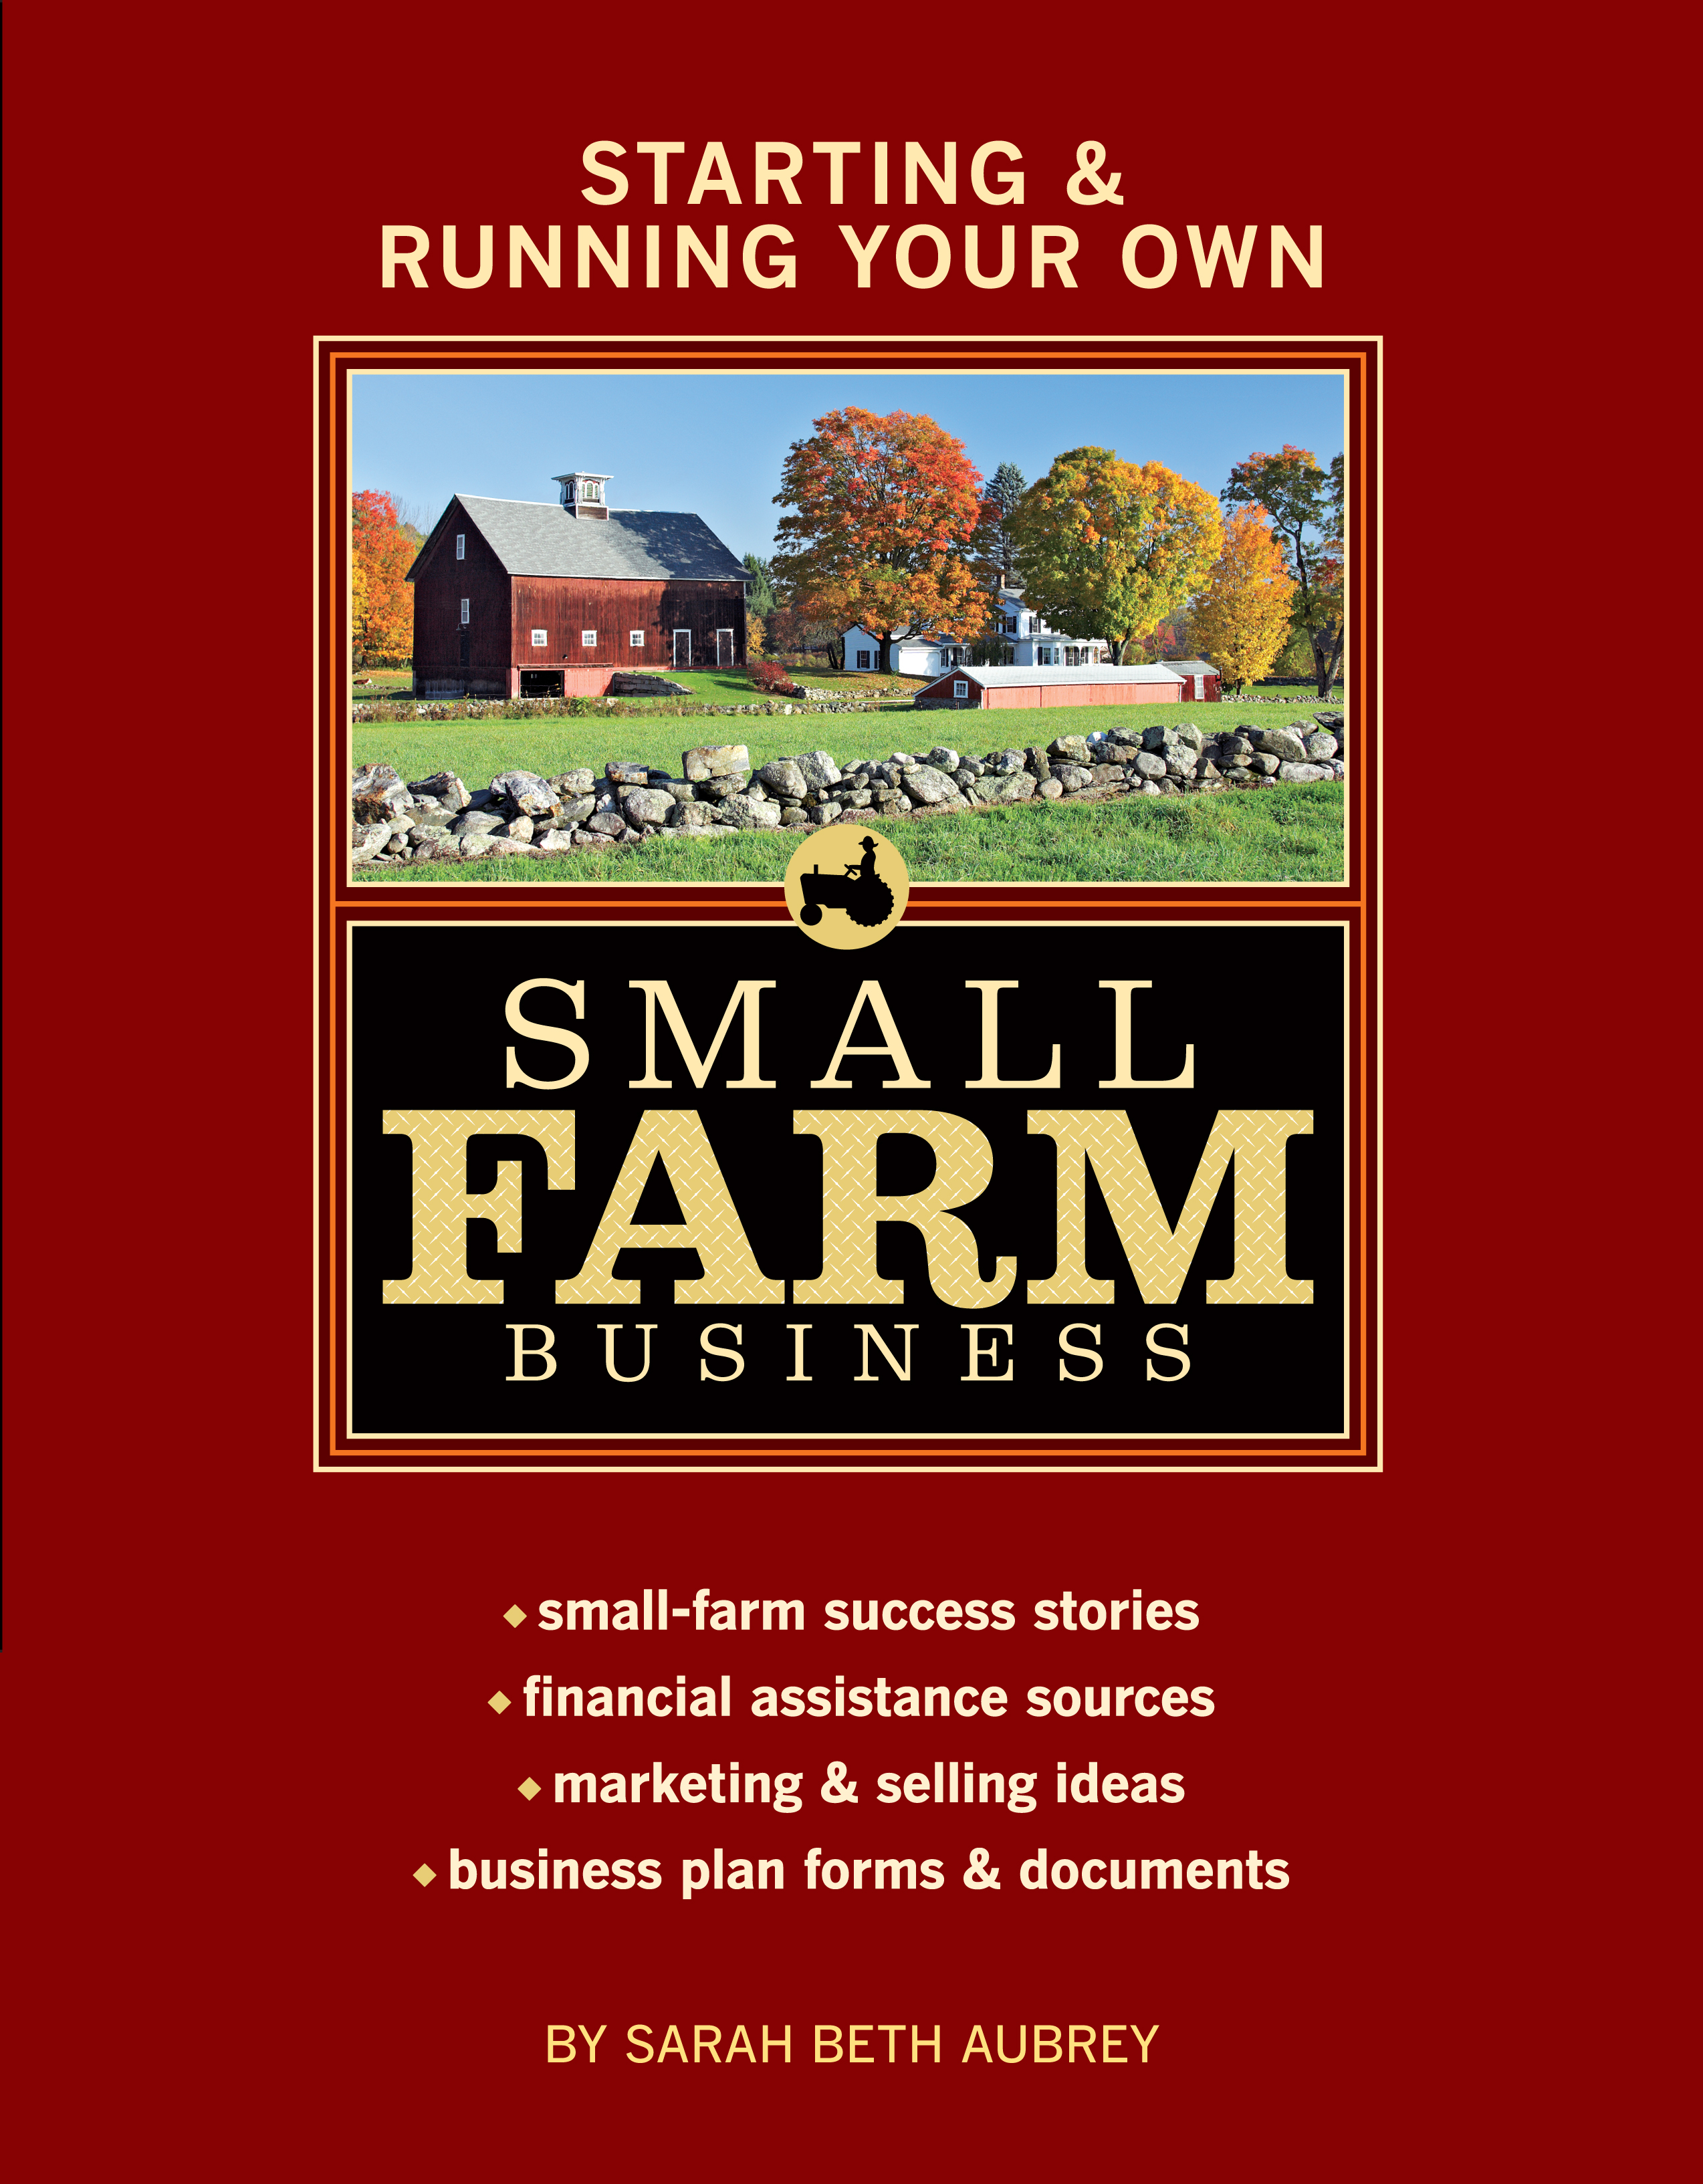 Starting & Running Your Own Small Farm Business Small-Farm Success Stories * Financial Assistance Sources * Marketing & Selling Ideas * Business Plan Forms & Documents - Sarah Beth Aubrey